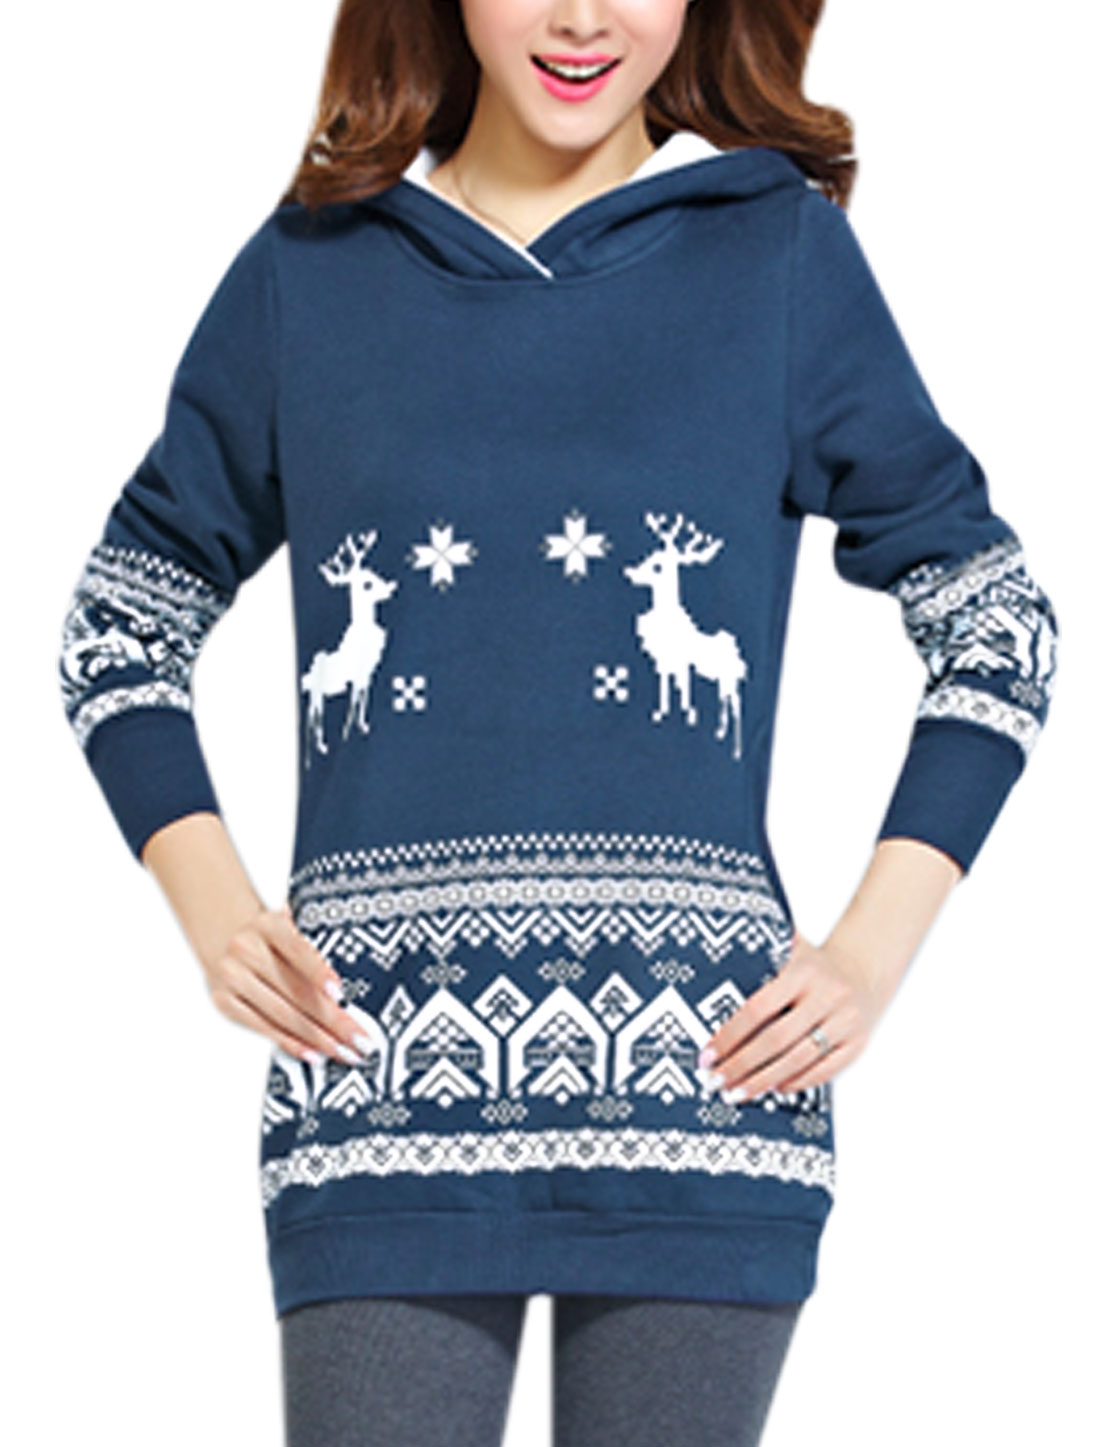 Long Sleeves Deer Printed Detail Stylish Sweatshirt for Women Navy Blue L